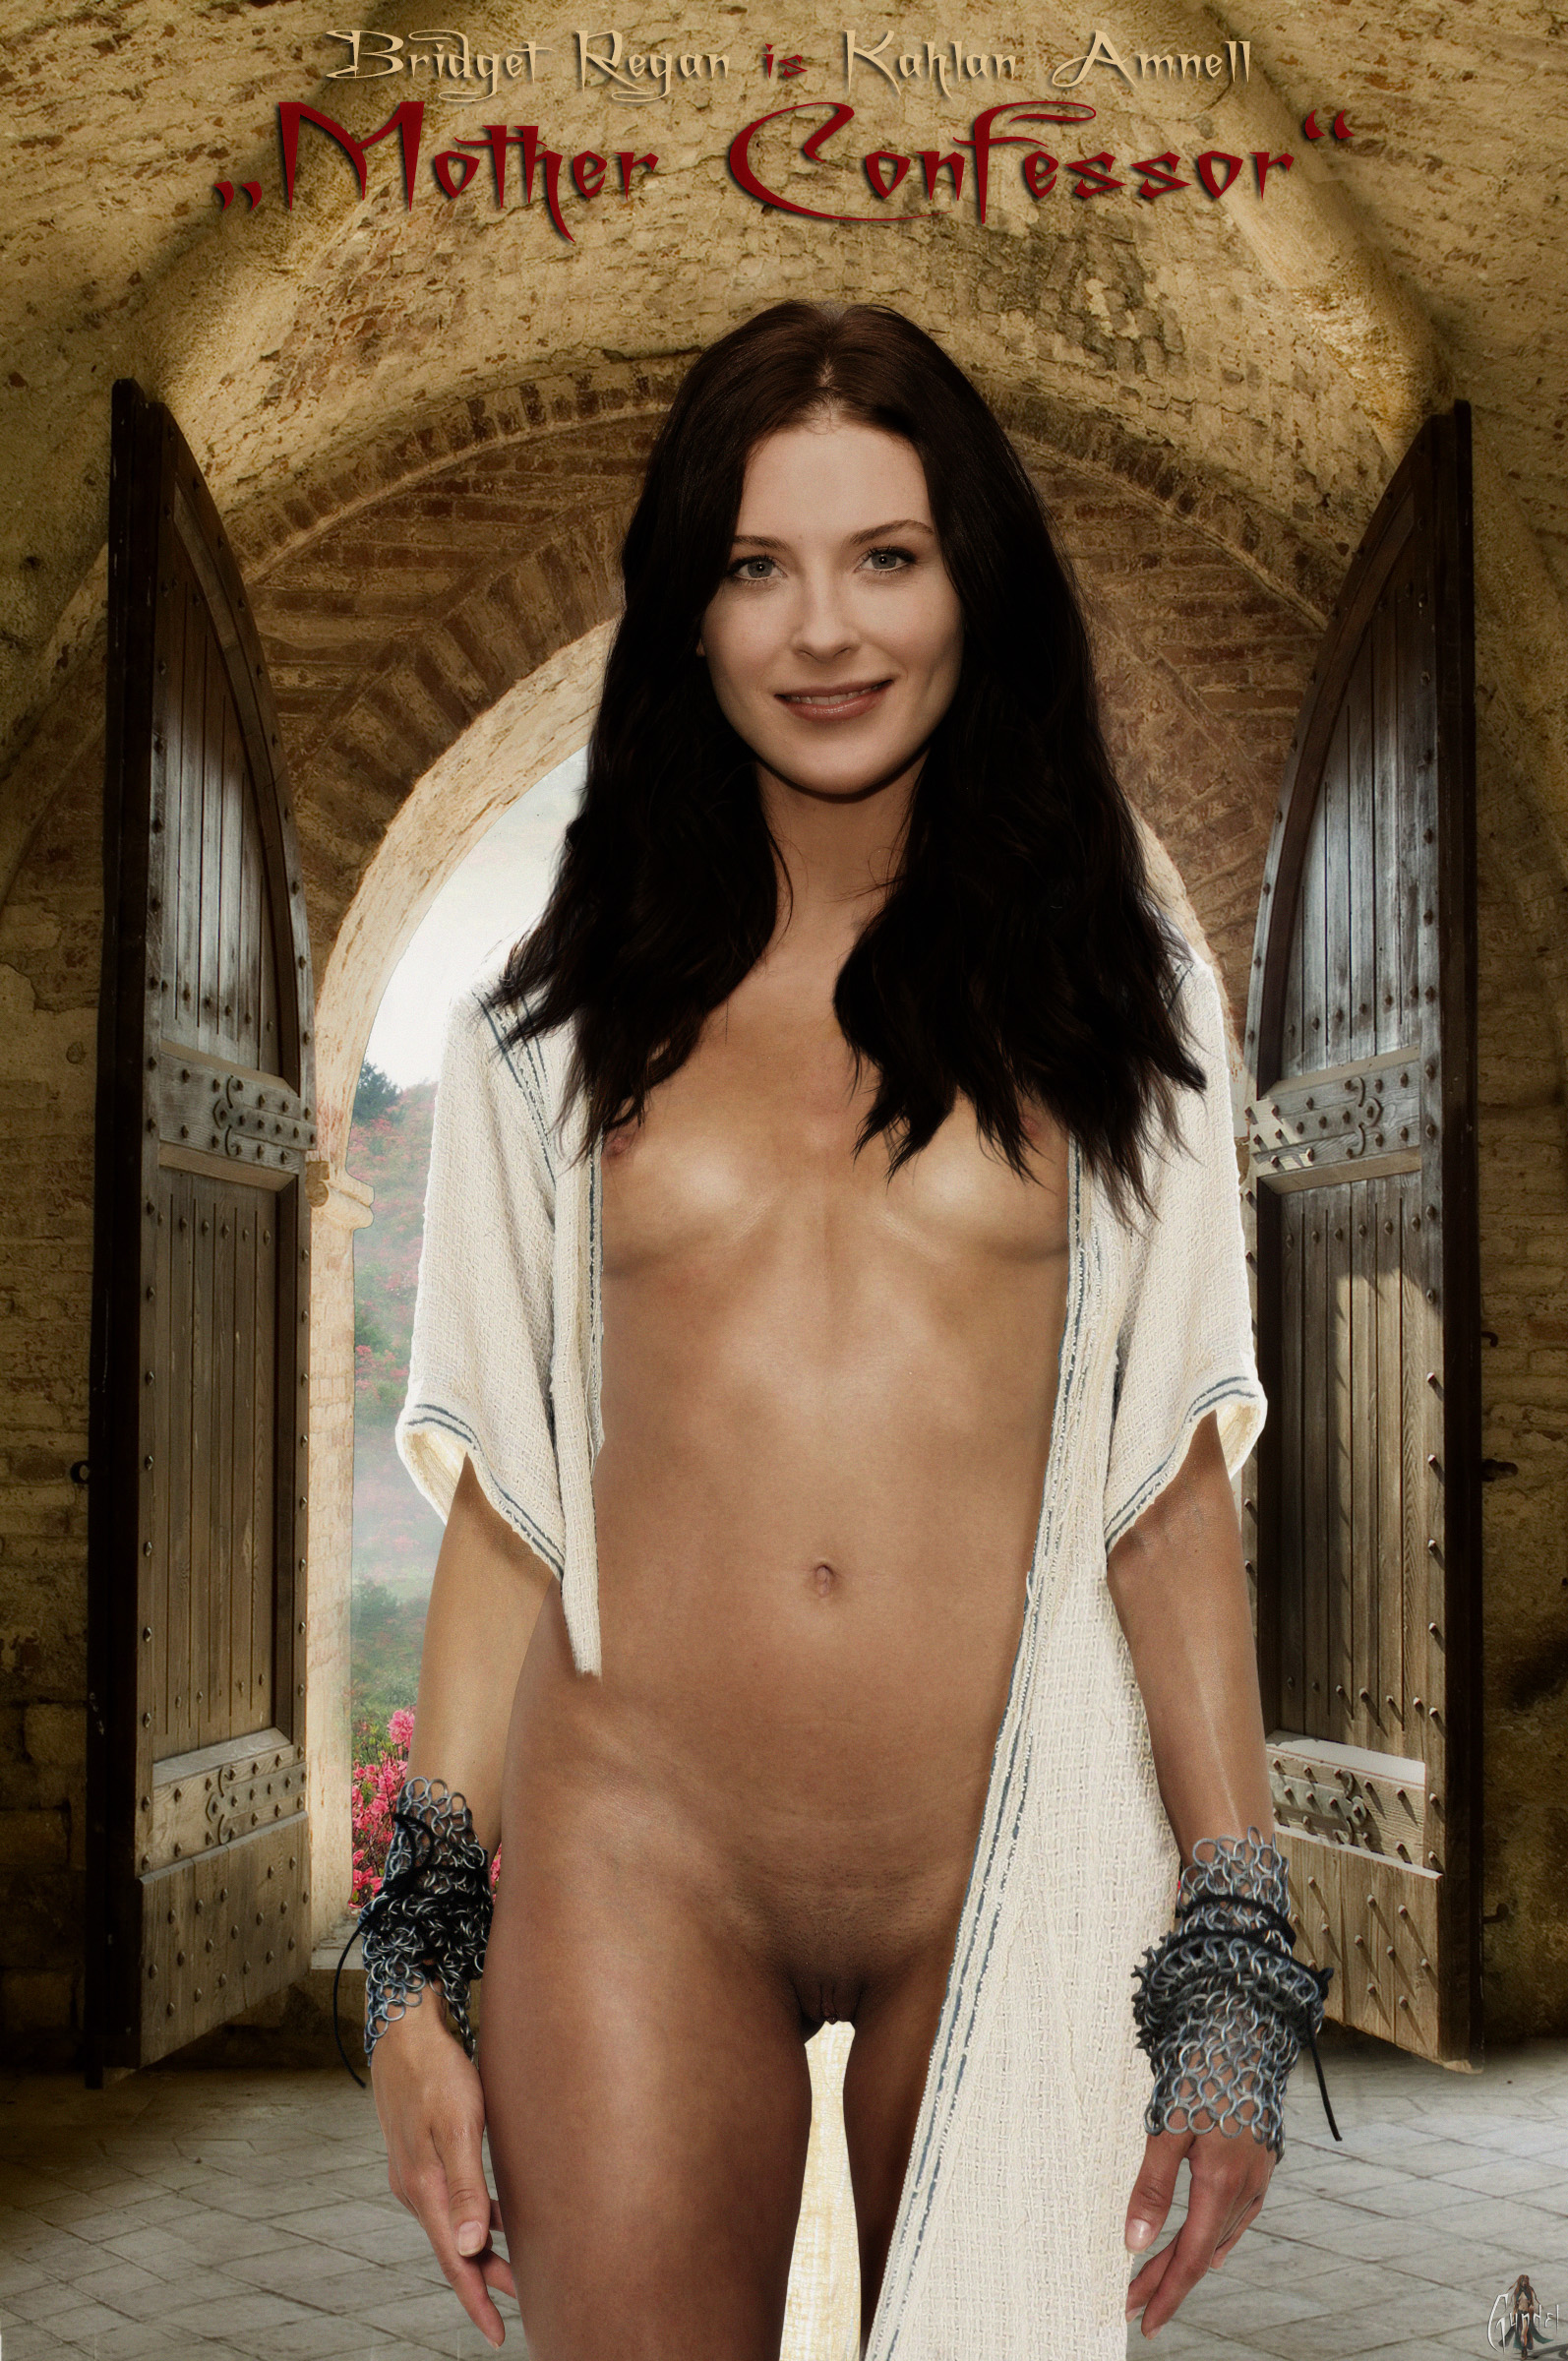 Are not Legend of the seeker naked with you